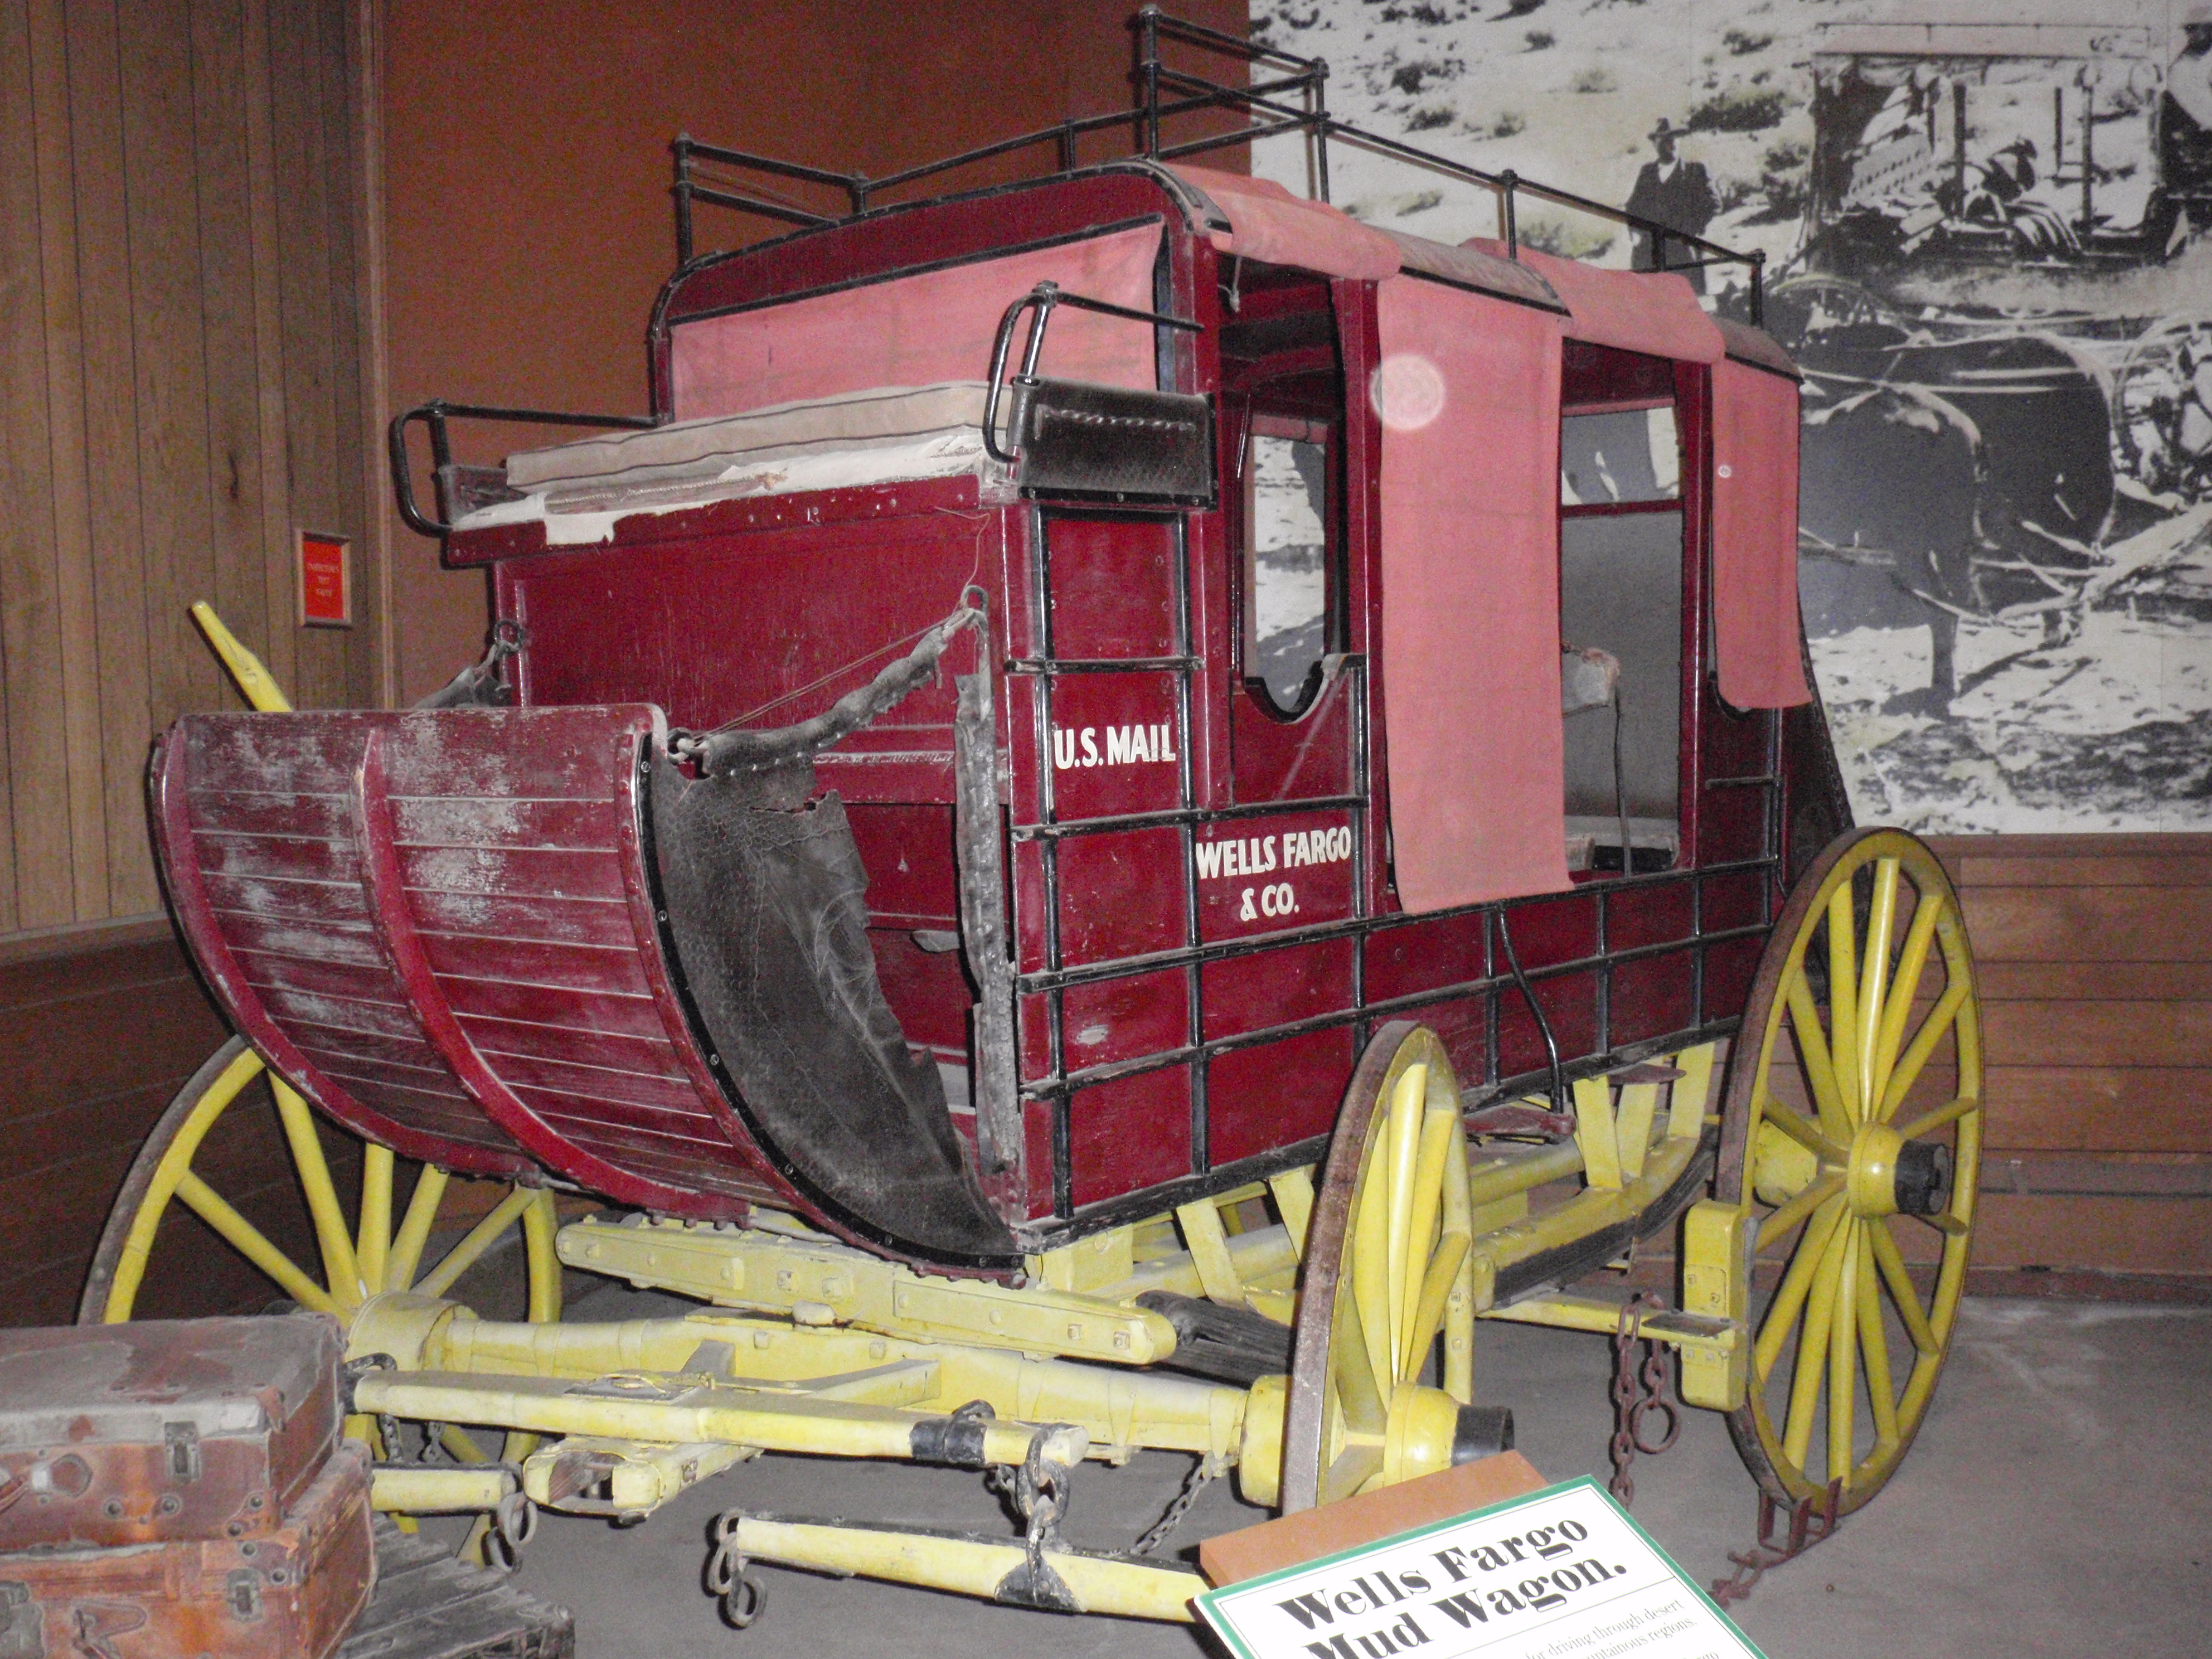 Original finish on mud wagon used by subcontractor to Wells Fargo on San Diego-Julian run in 1870s. Wagon is housed at the Seeley Stable Museum in Old Town San Diego Historic Park. April 2012 photo by James Ulvog.